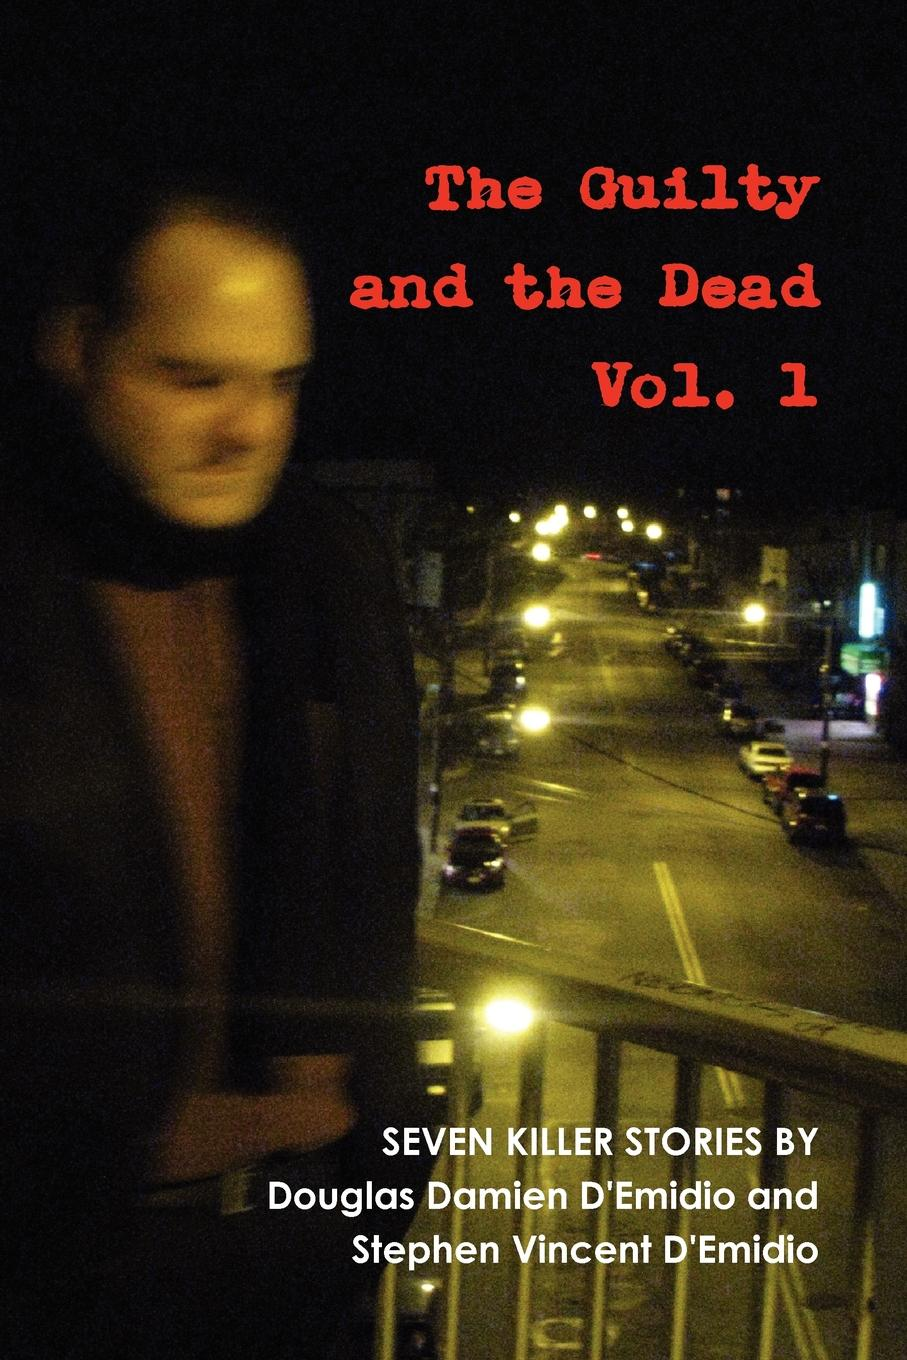 Stephen D'Emidio, Douglas D'Emidio The Guilty and the Dead, Vol. 1 where the dead lie